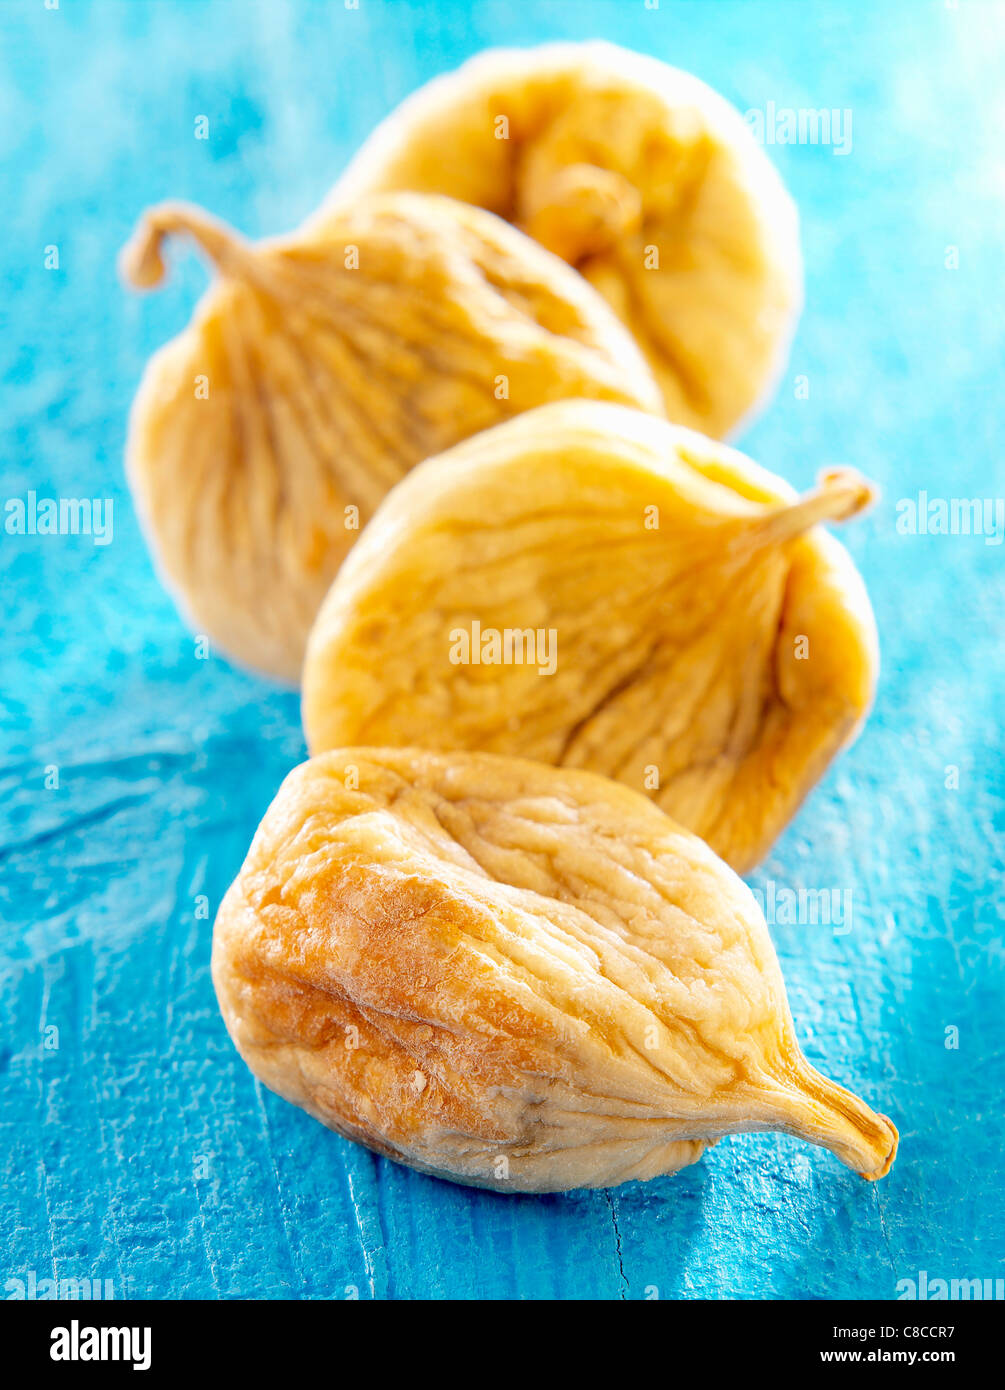 morrocco dried figs - Stock Image